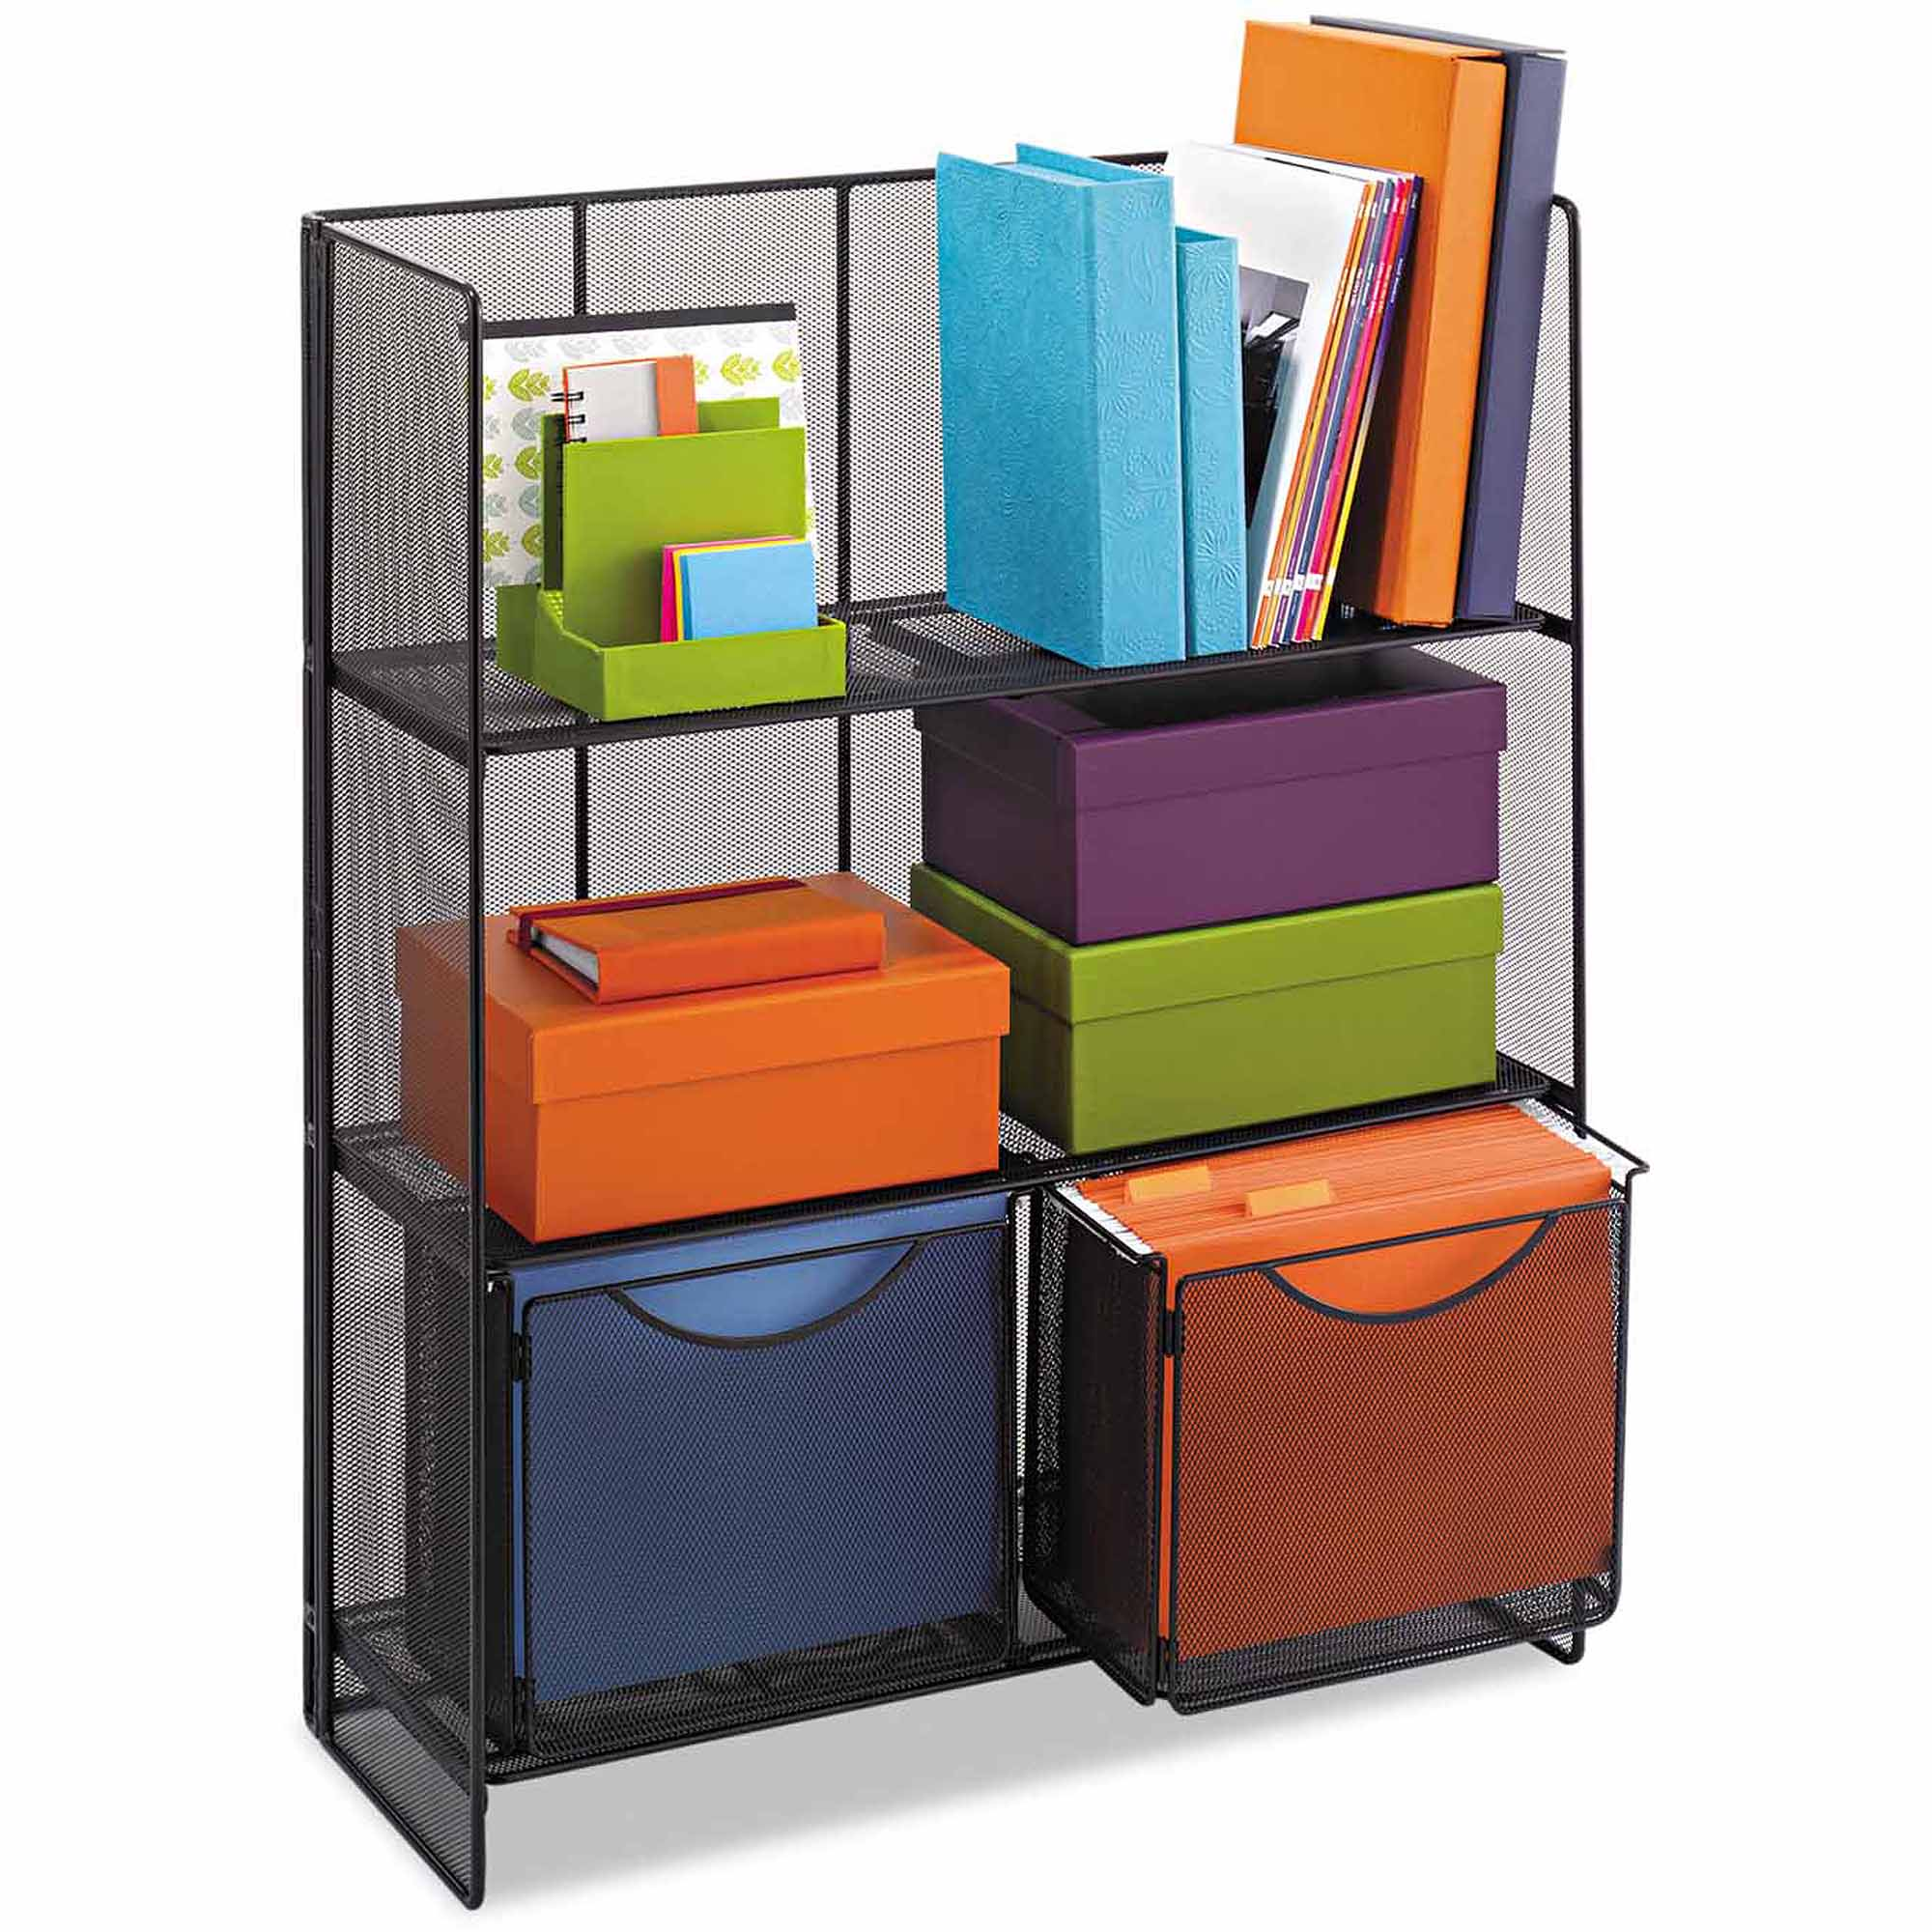 Safco Onyx Mesh Fold-Up Shelving, Black